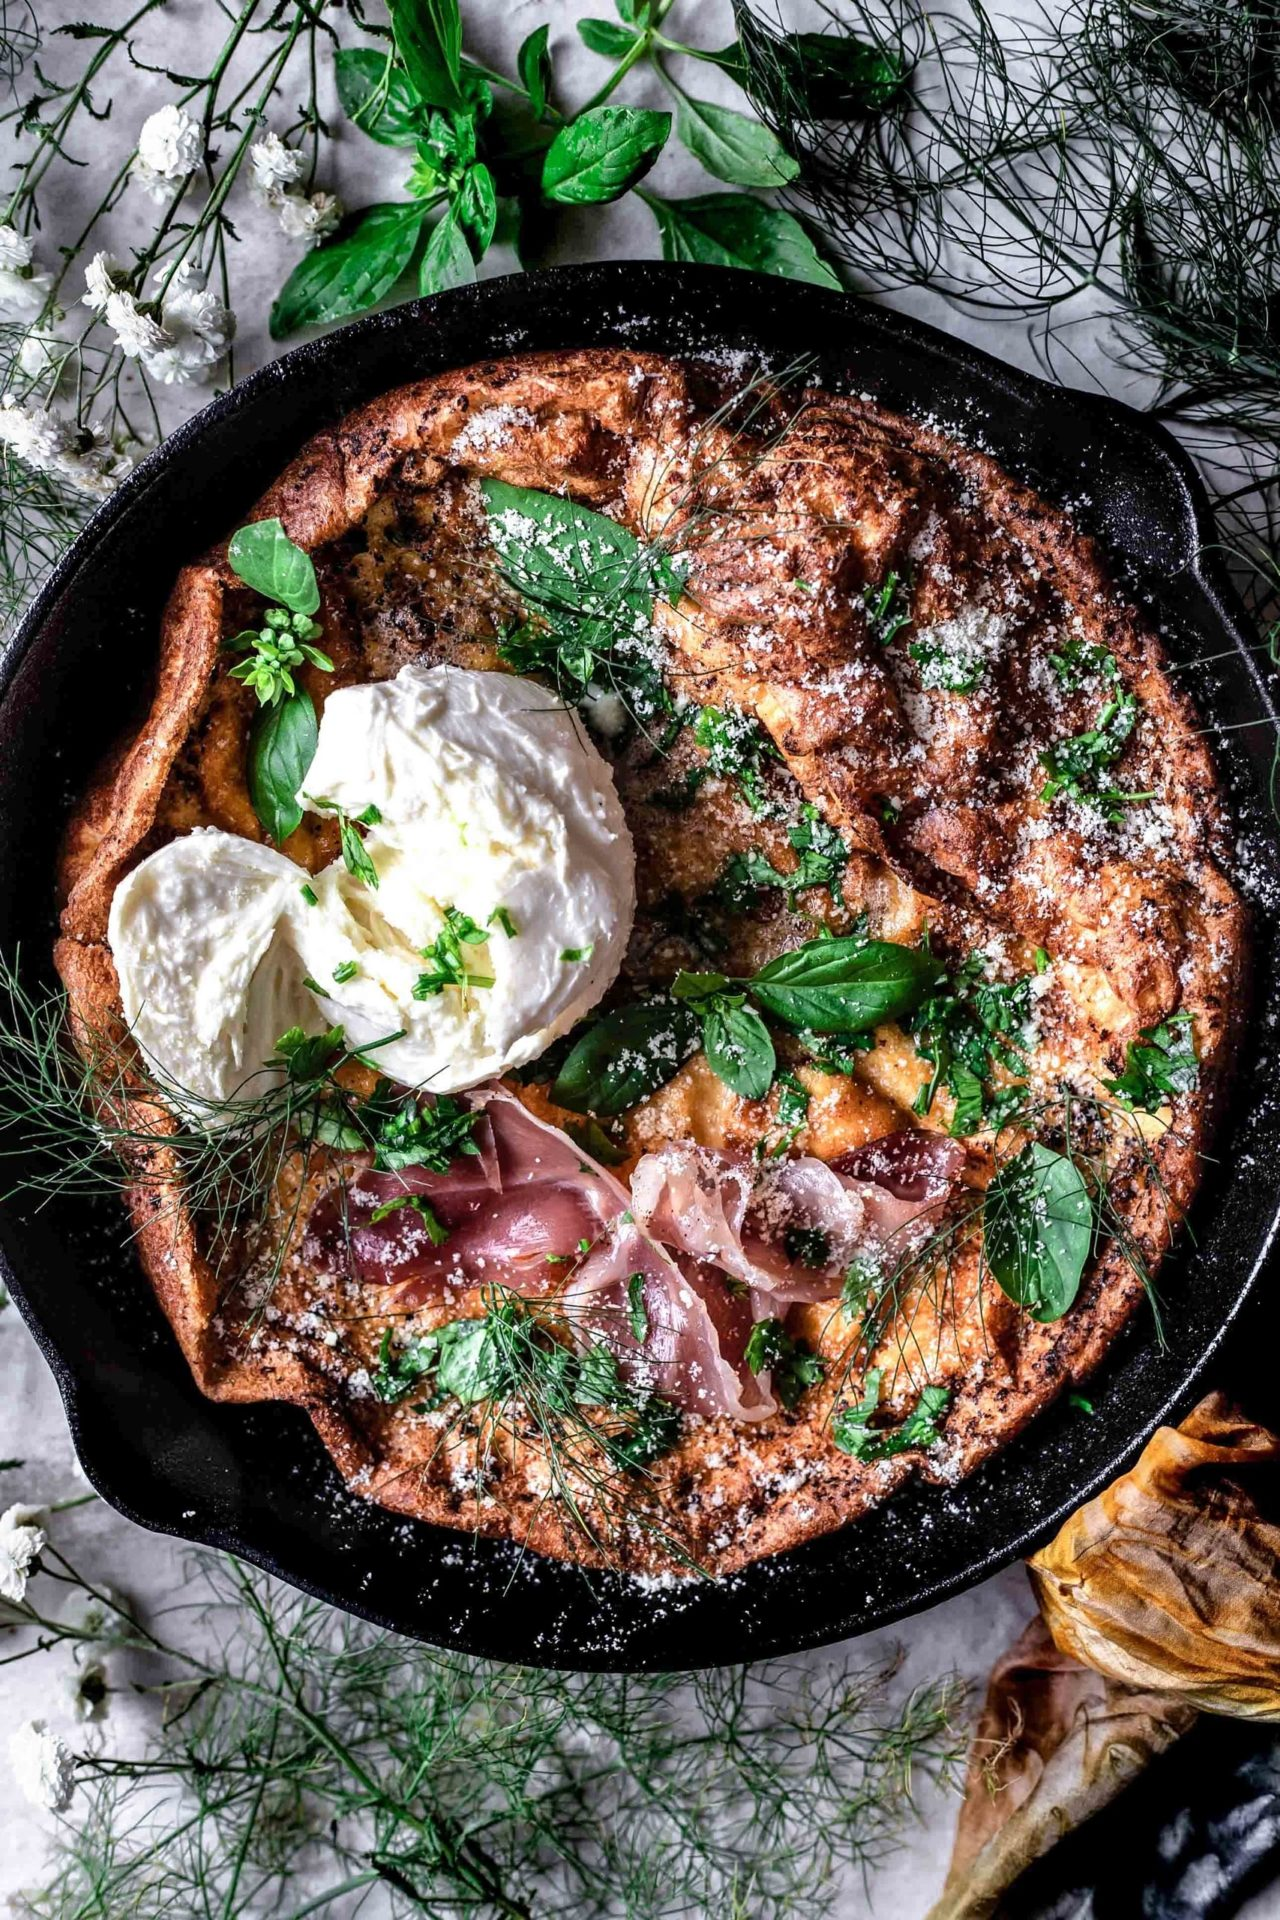 This Gluten-Free Savory Dutch Baby with Prosciutto and Parmesan is flavorful, savory, very simple to make and so delicious!